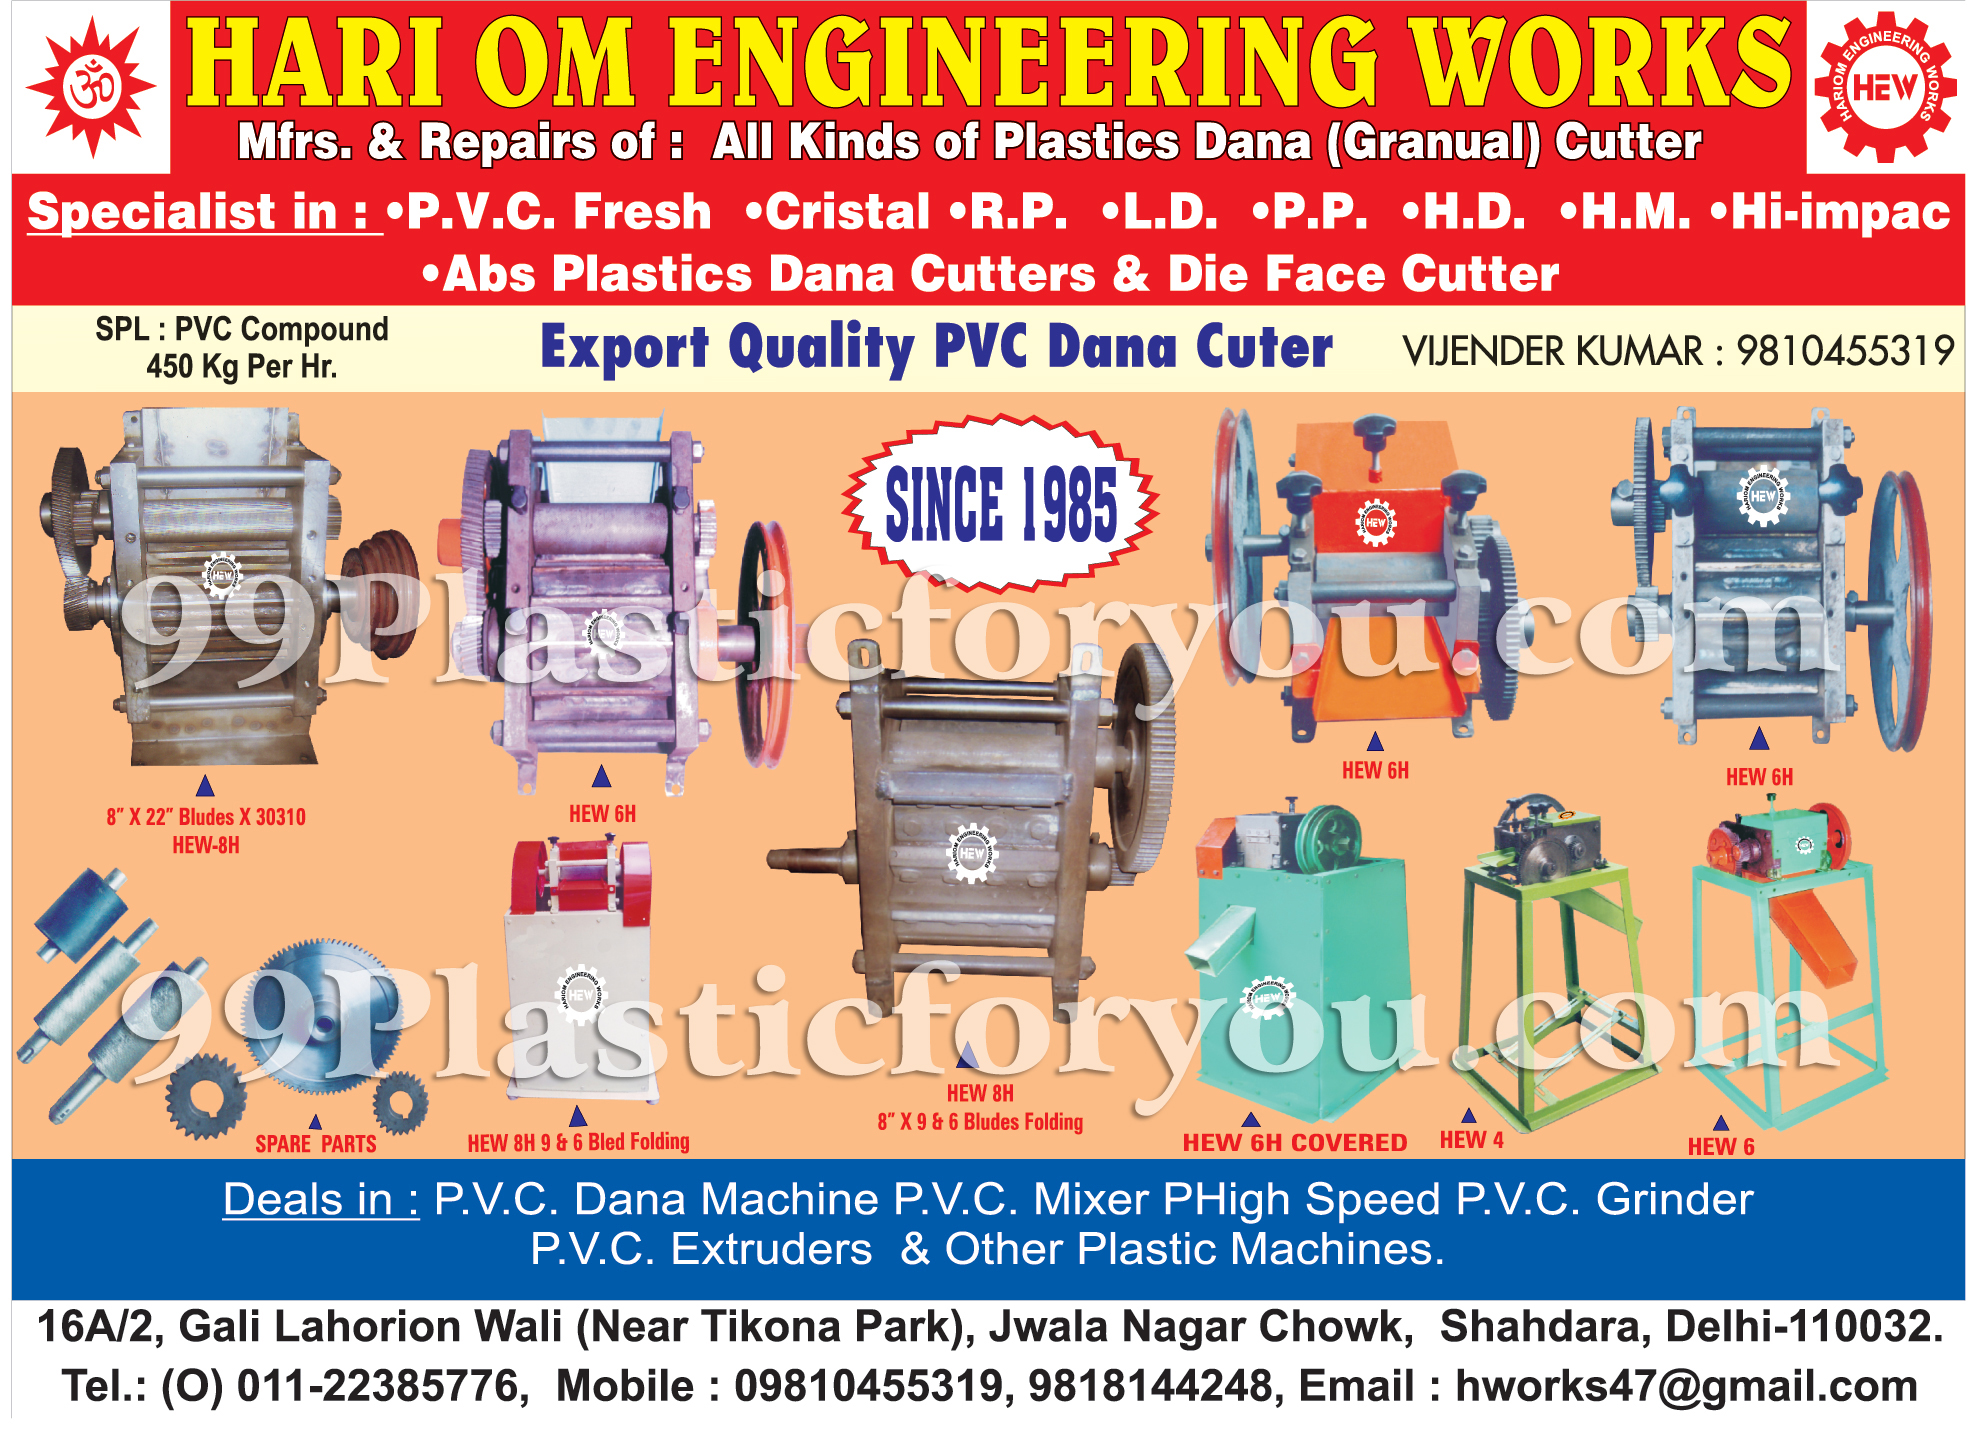 Plastic Granule Cutters, Plastic Granule Cutter Repairs, Die Face Cutters, ABS Plastic Granule Cutters, PVC Granule Machines, PVC Mixers, PVC Grinders, PVC Extruder, Plastic Machines,ABS Plastics Dana Cutters, Plastic Dana Cutter, Granual Cutter, PVC Dana Machine, PVC Compound, Plastic Dana Cutters, Plastic Dana Cutter Repairs, ABS Plastic Dana Cutters, PVC Dana Machines